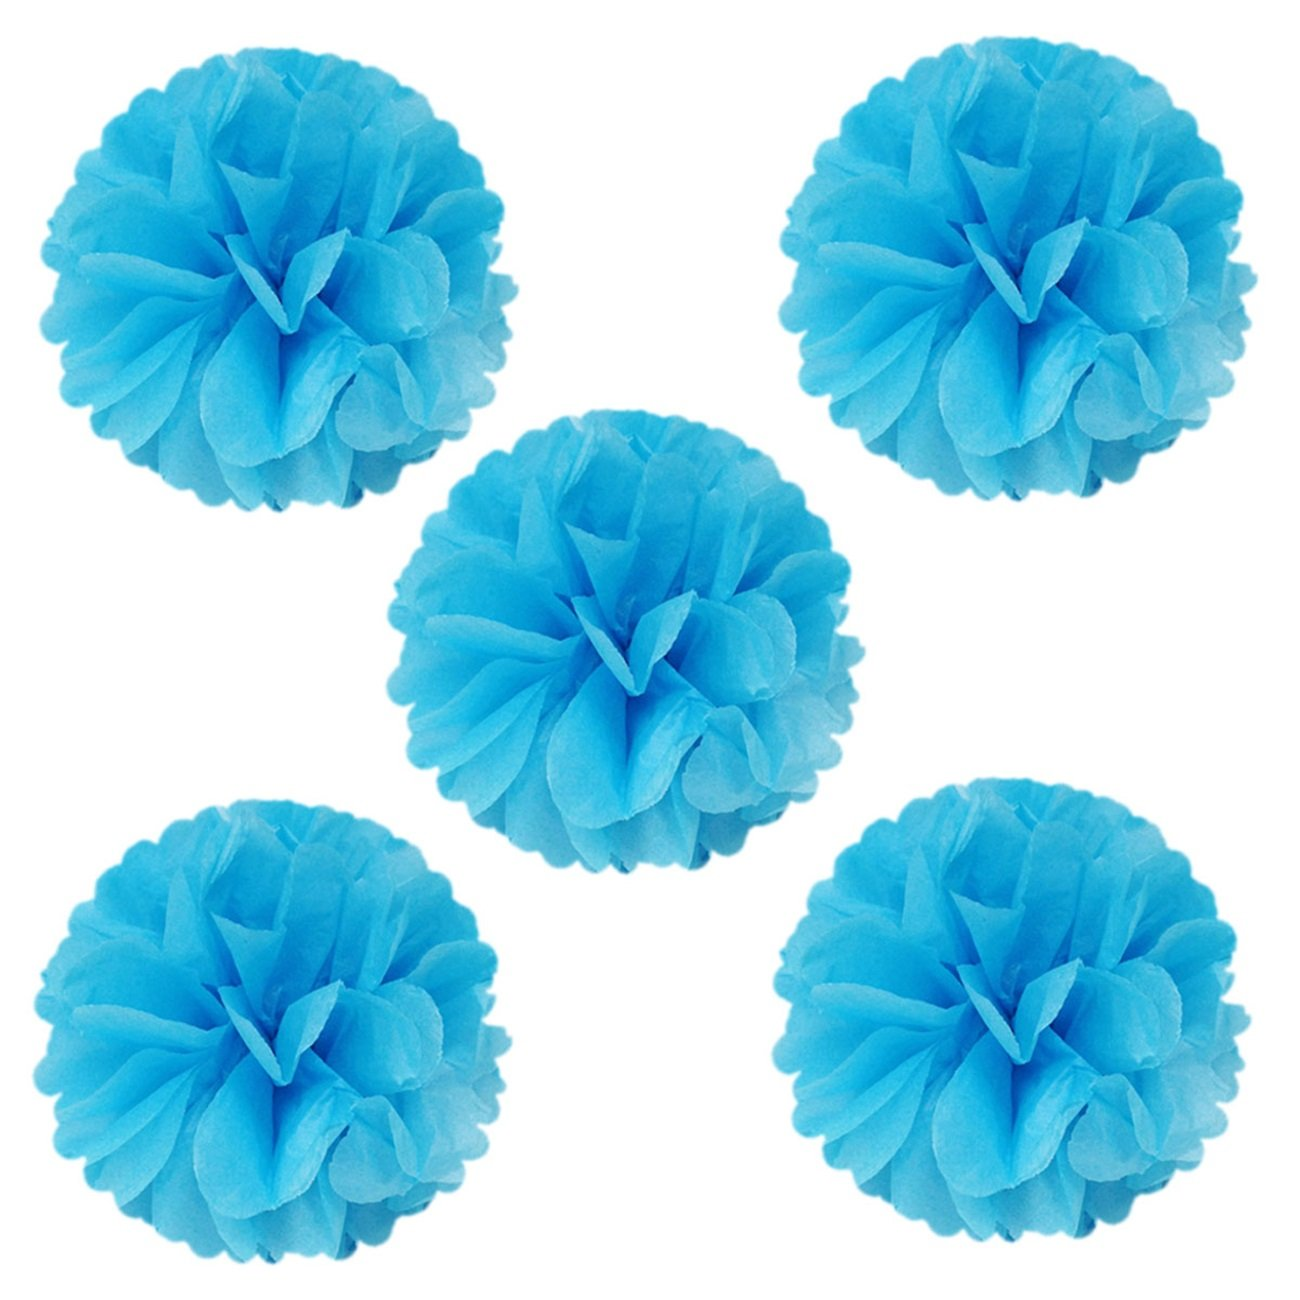 Baby Showers 8 Birthday Parties Wrapables A67637c Set of 5 Tissue Pom Poms Party Decorations for Weddings Hot Pink and Nursery Decor